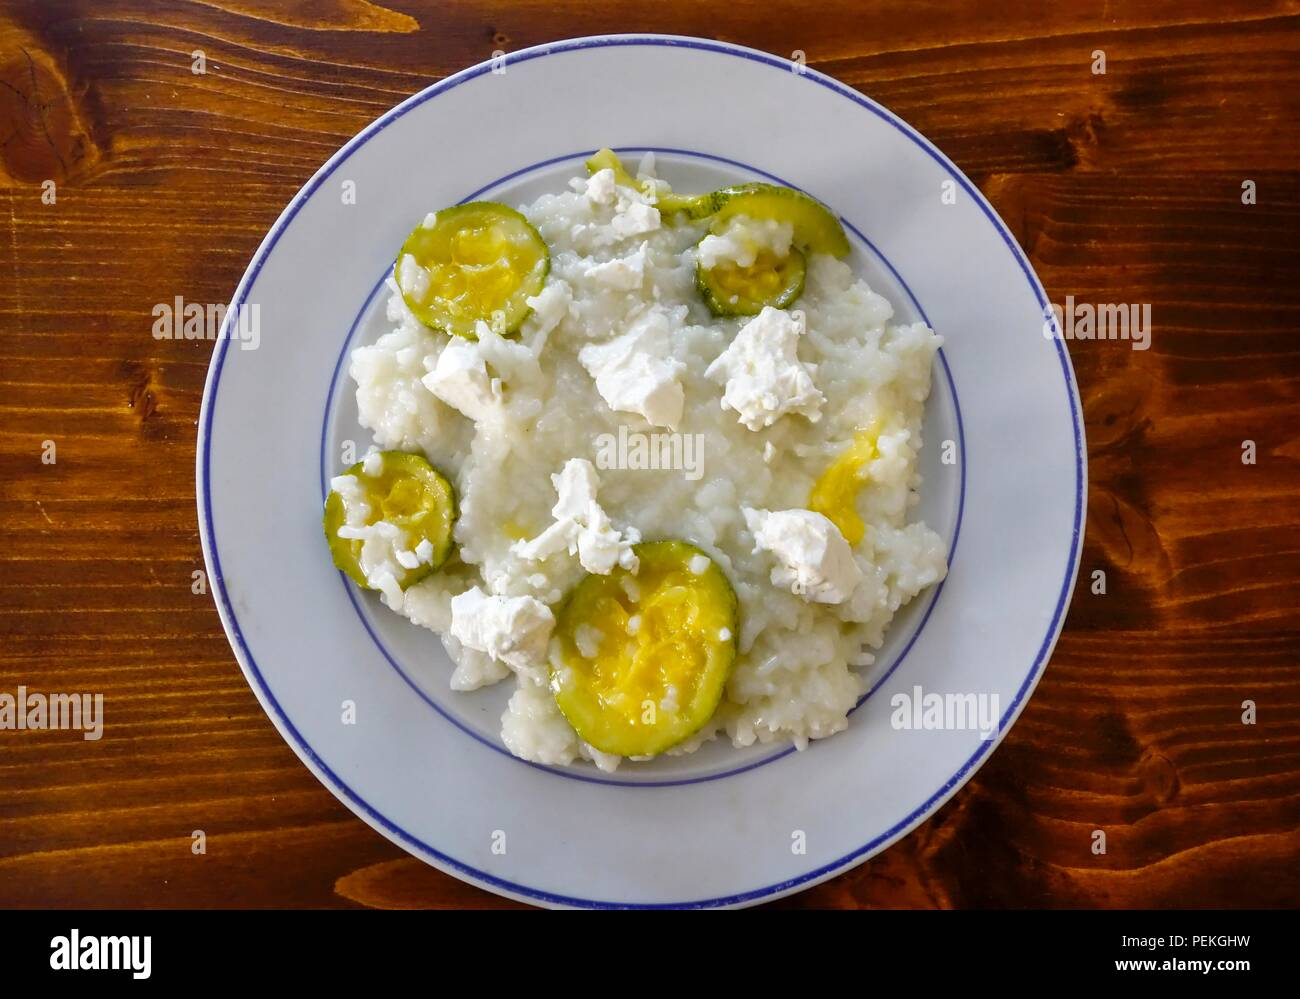 Cougette with Rice and Feta Cheese - Stock Image